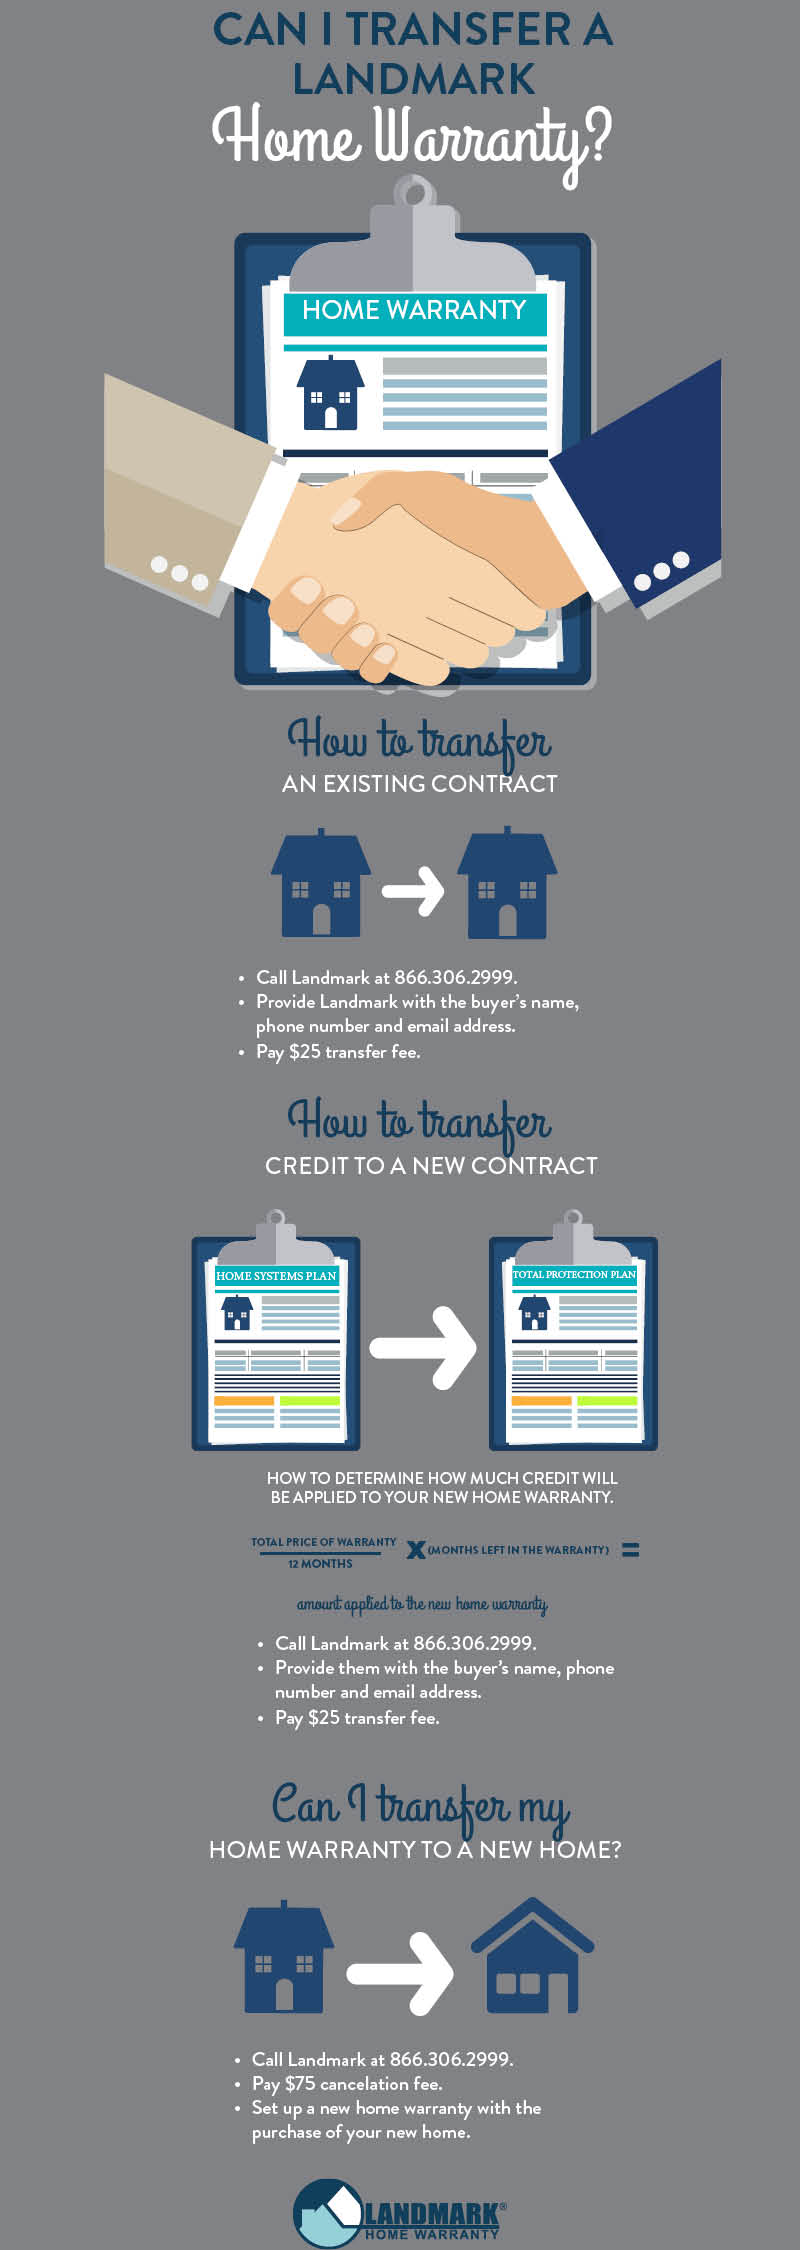 infographic explaining the different ways to that someone can transfer a home warranty